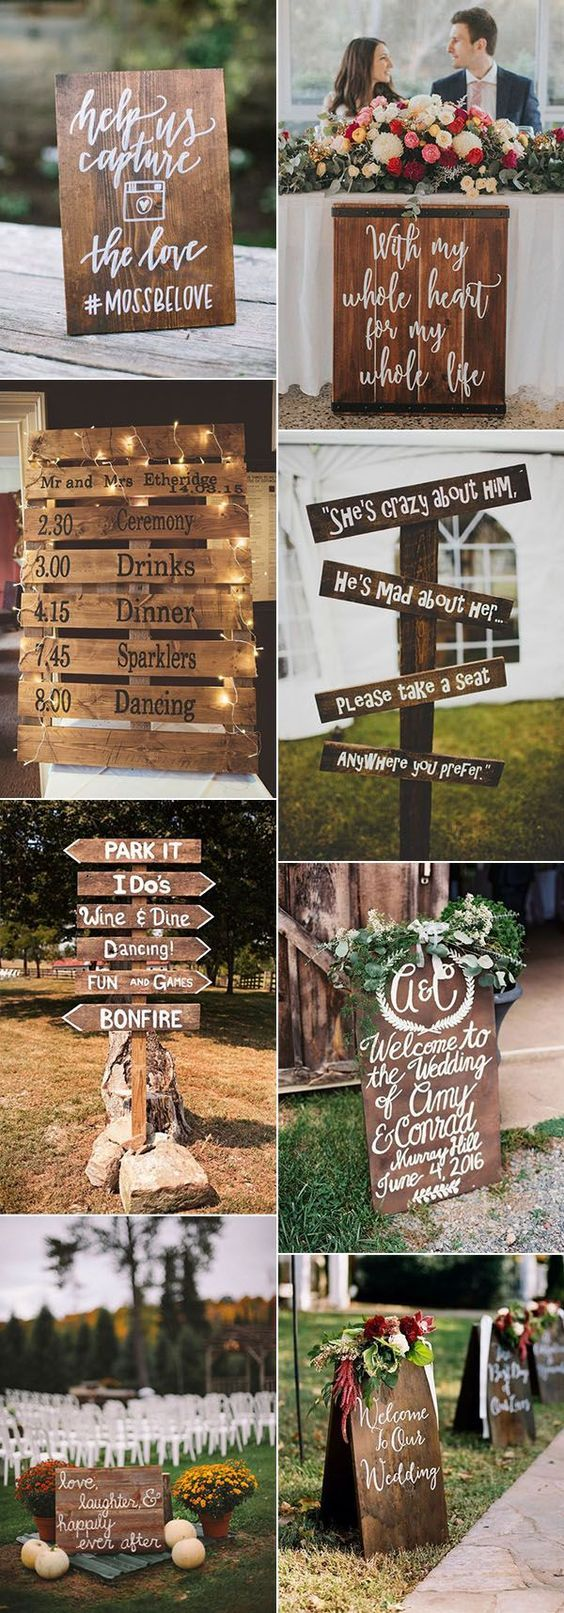 best I love a good wedding images on Pinterest  Wedding ideas